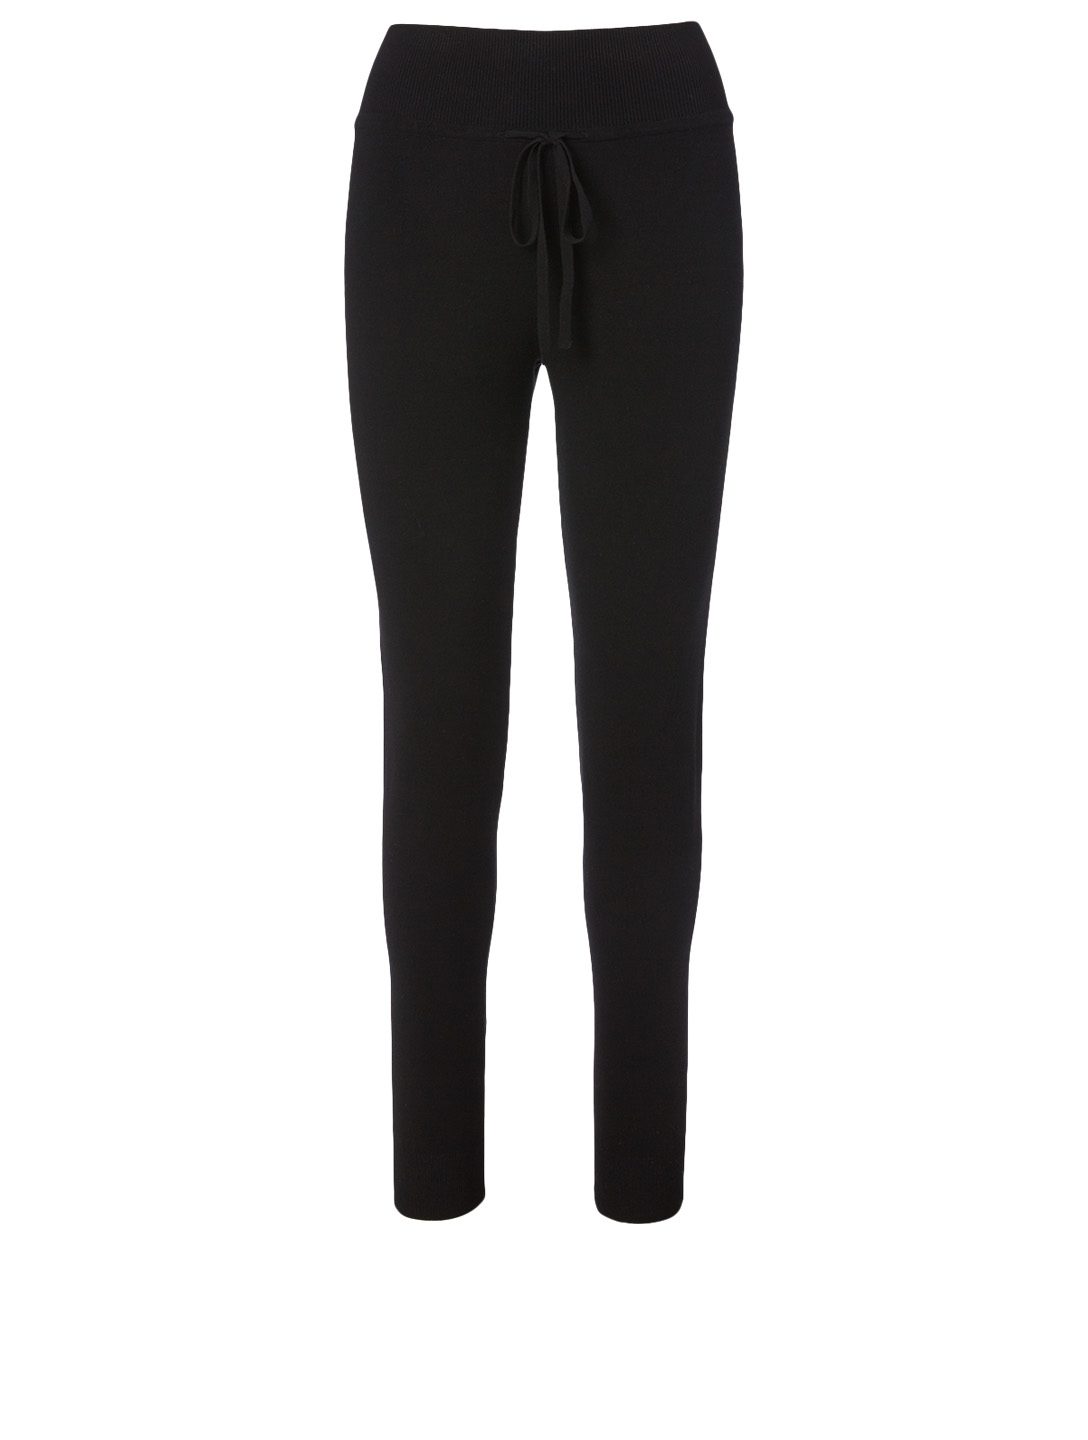 LIVE THE PROCESS Knit High Waisted Pants Women's Black